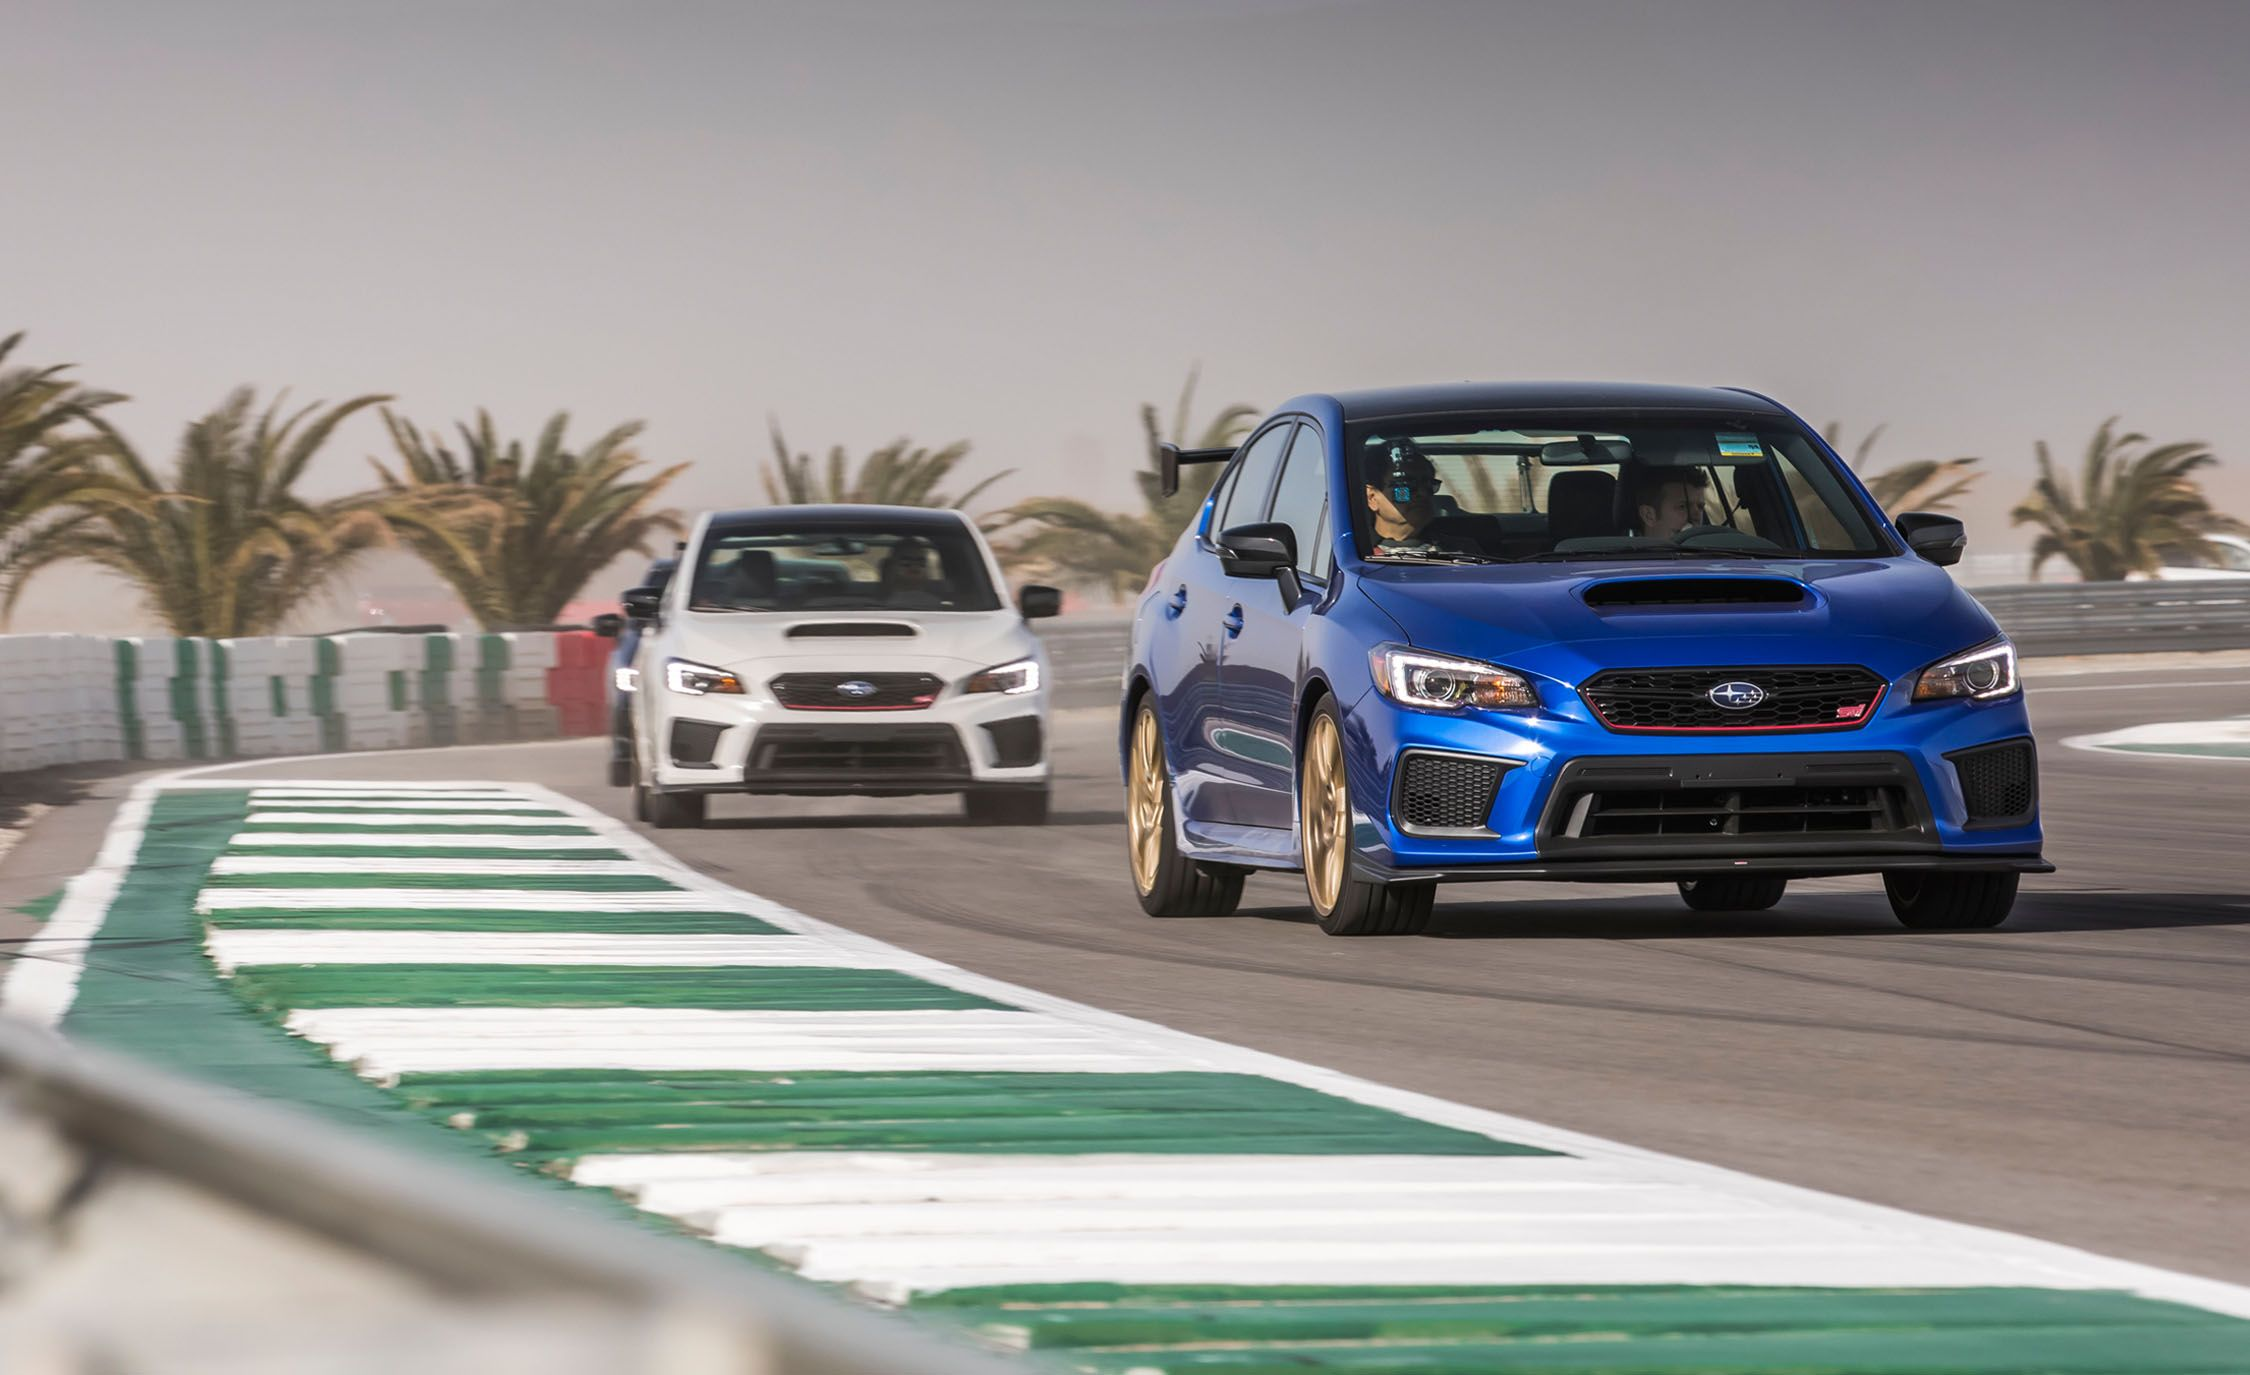 2018 Subaru Wrx Sti Type Ra First Drive Review Car And Driver